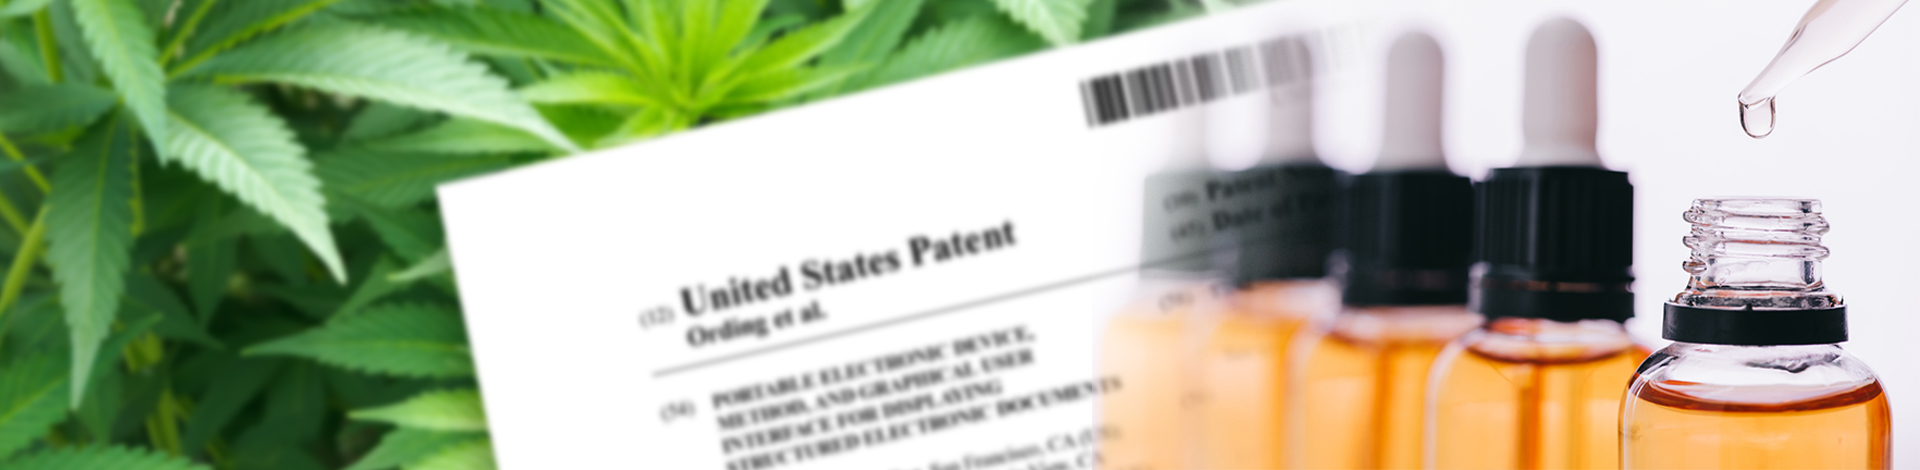 Did You Know That CBD is Patented by the U.S. Government?